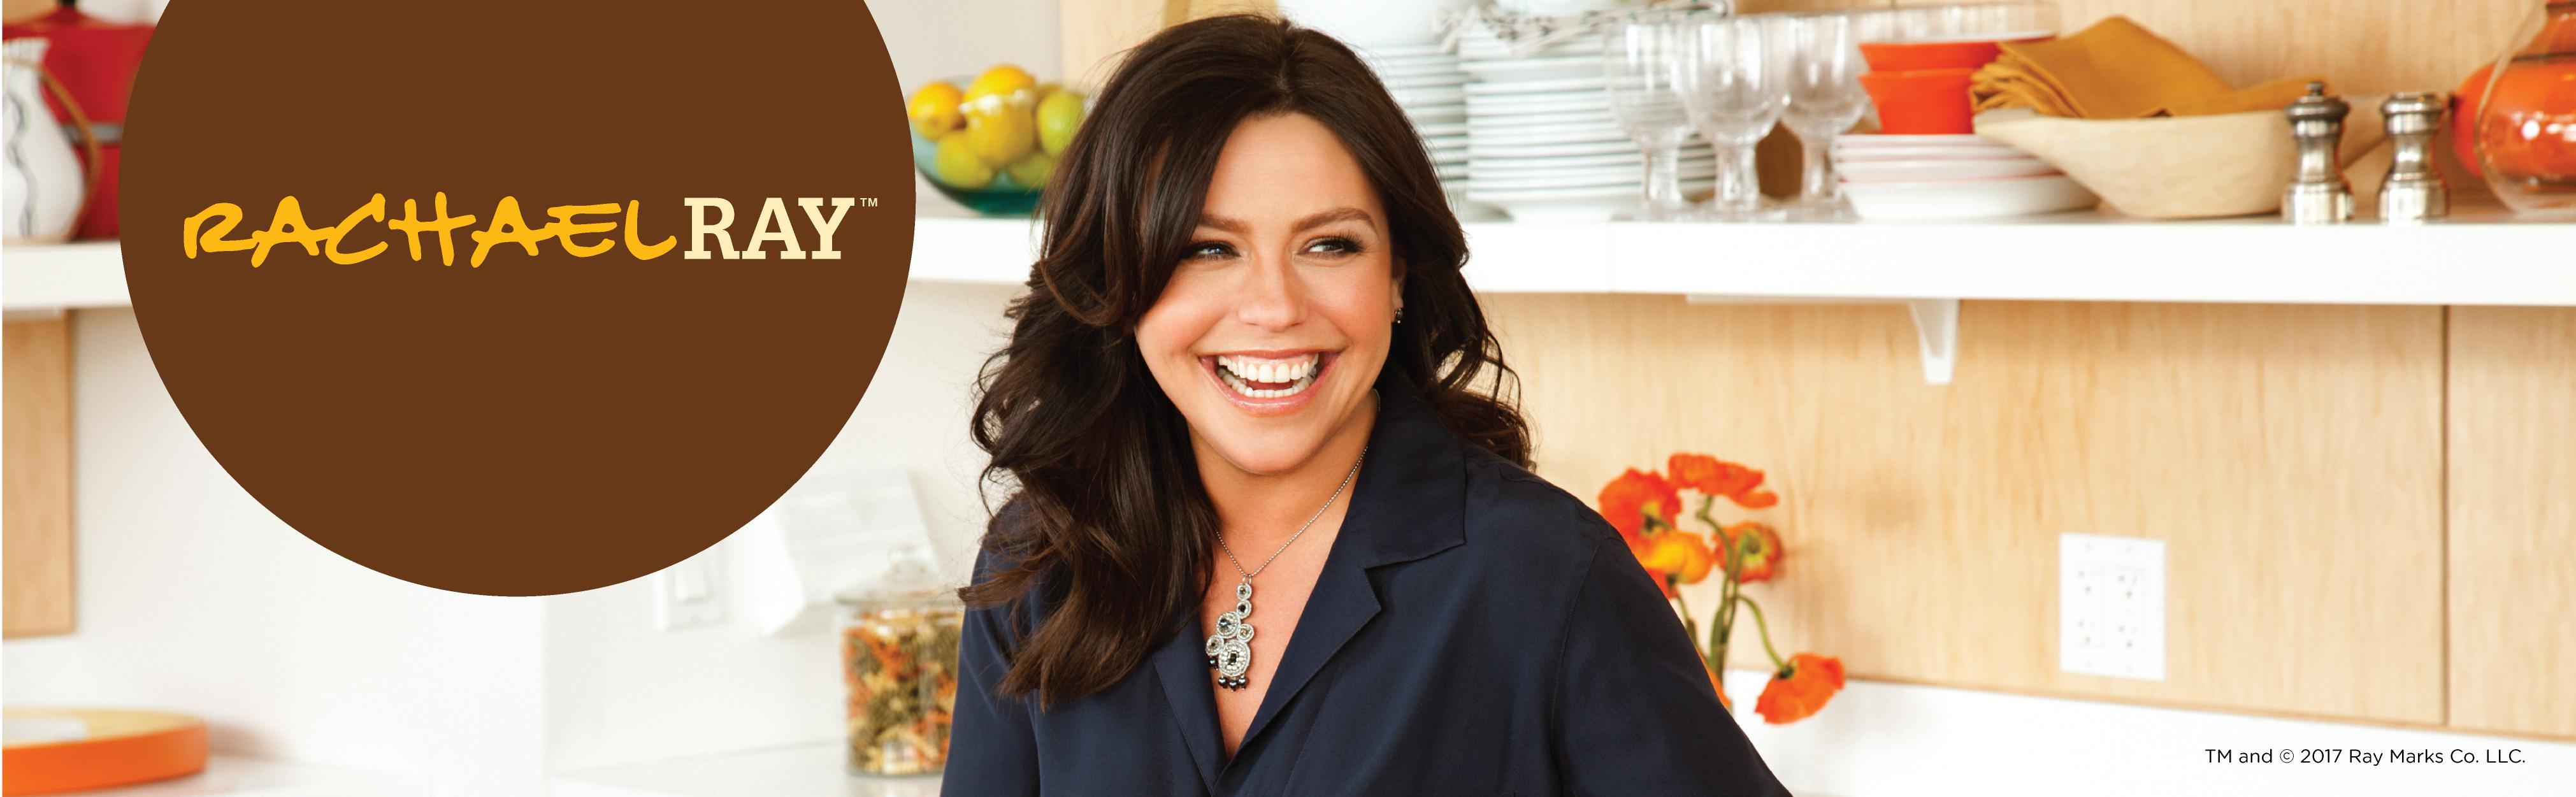 rachael ray hard anodized ii nonstick. Black Bedroom Furniture Sets. Home Design Ideas